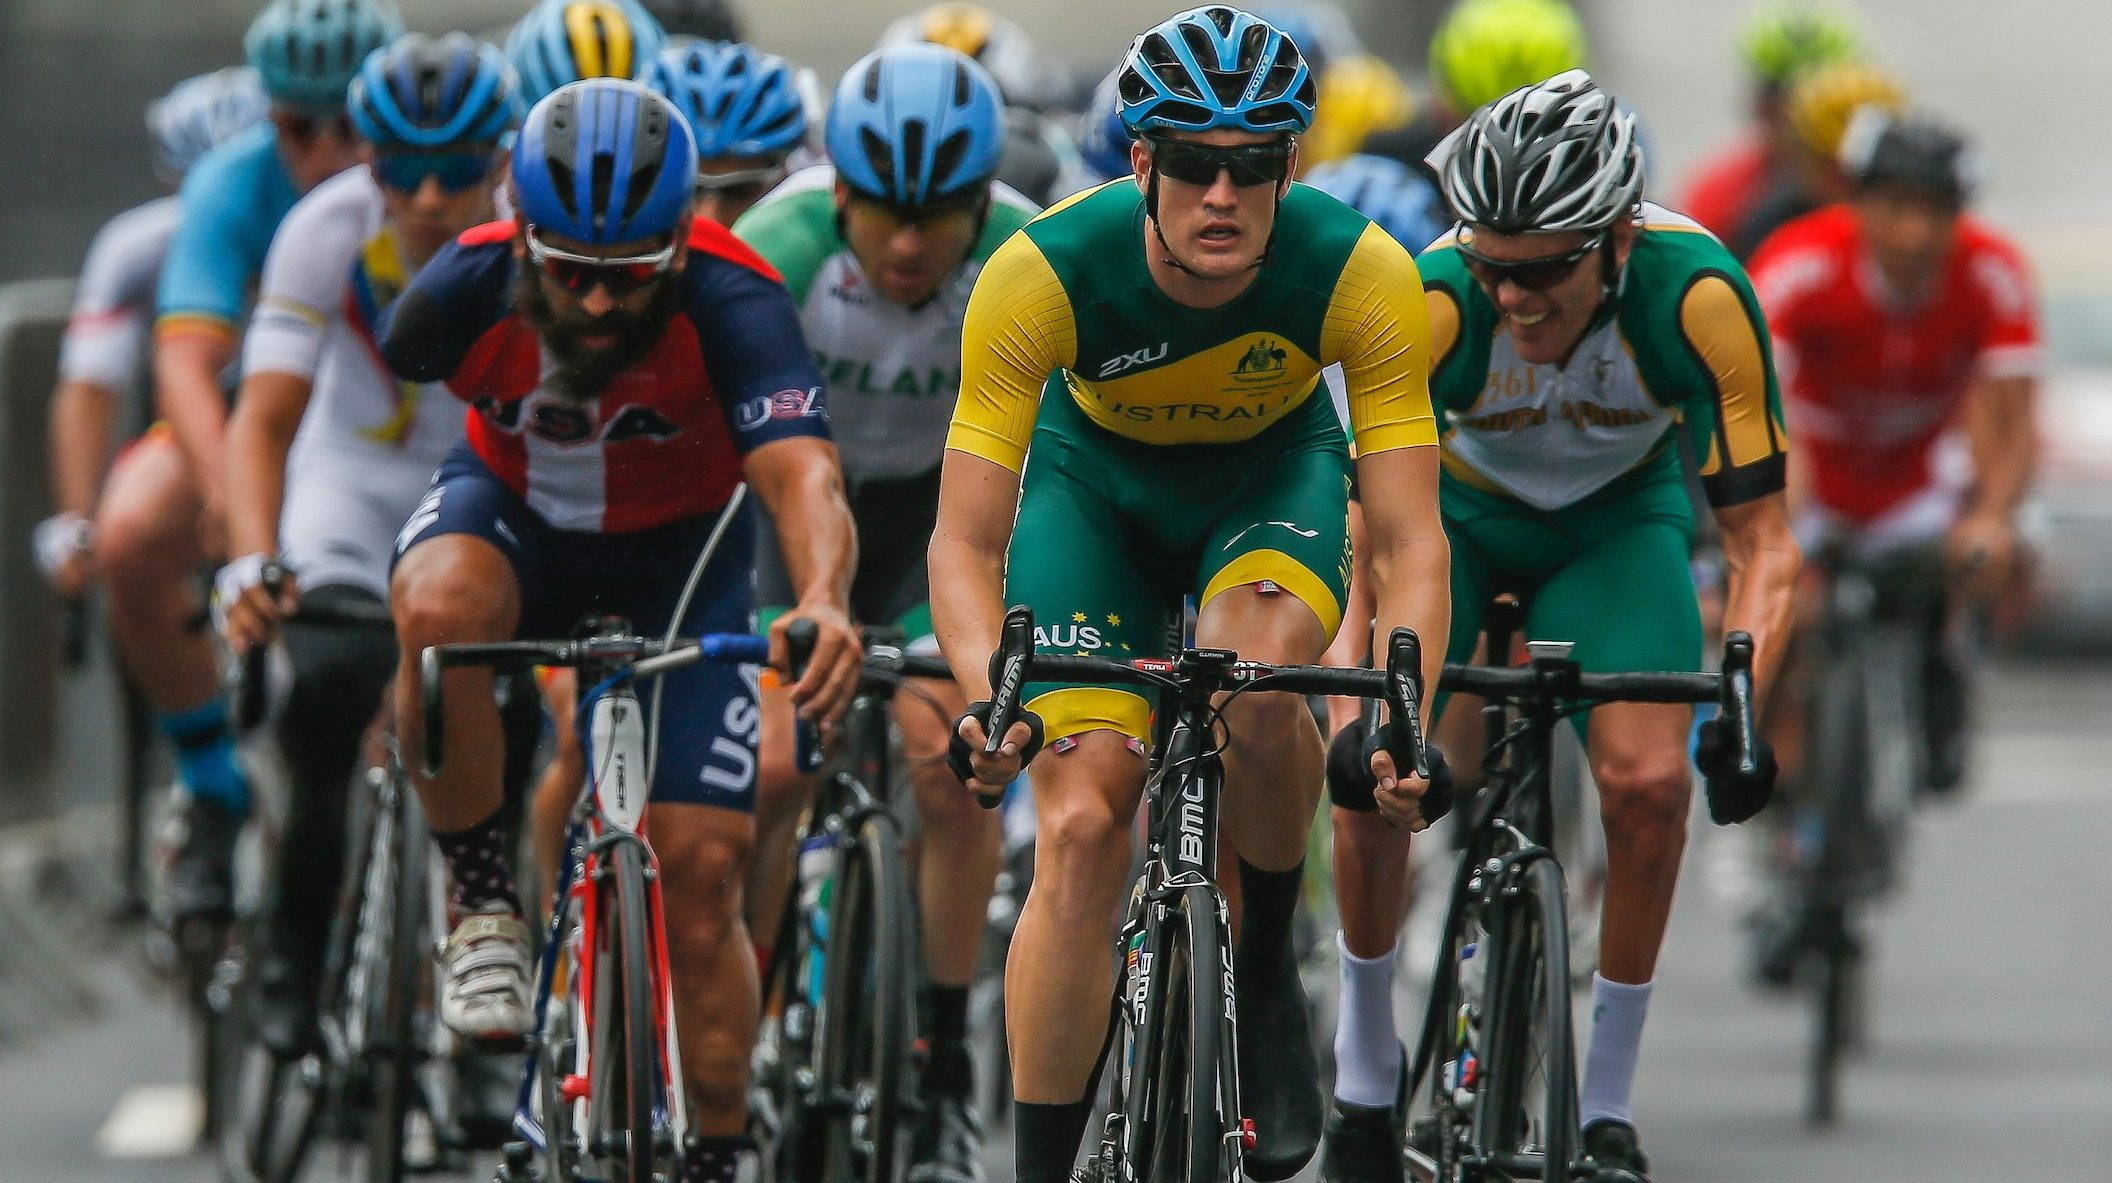 Rookies ready to roar at 2017 Para-cycling Road Worlds